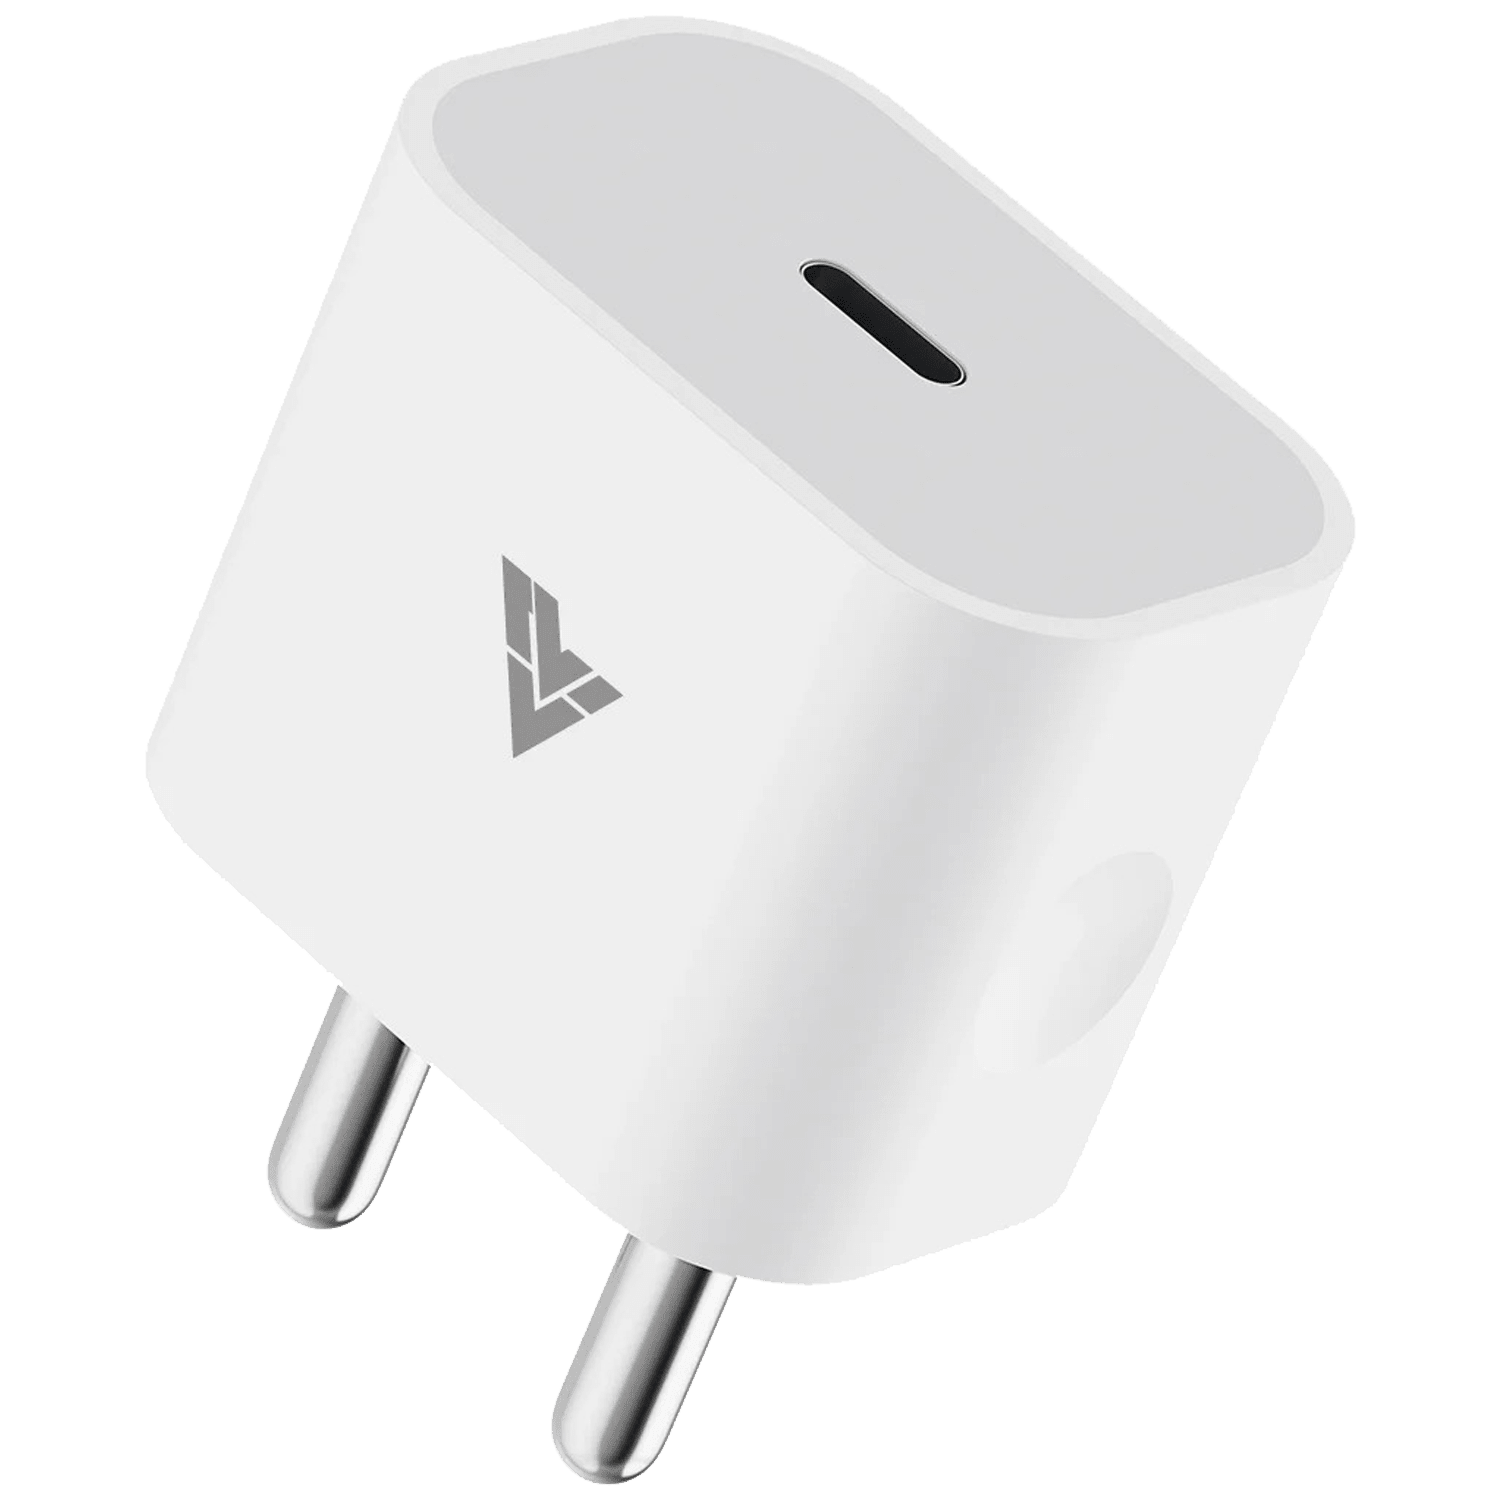 Vaku Luxos 20 Watts/4 Amps 1-Port USB Type-C Wall Charging Adapter (Fast Charging Capability, 20WPD, White)